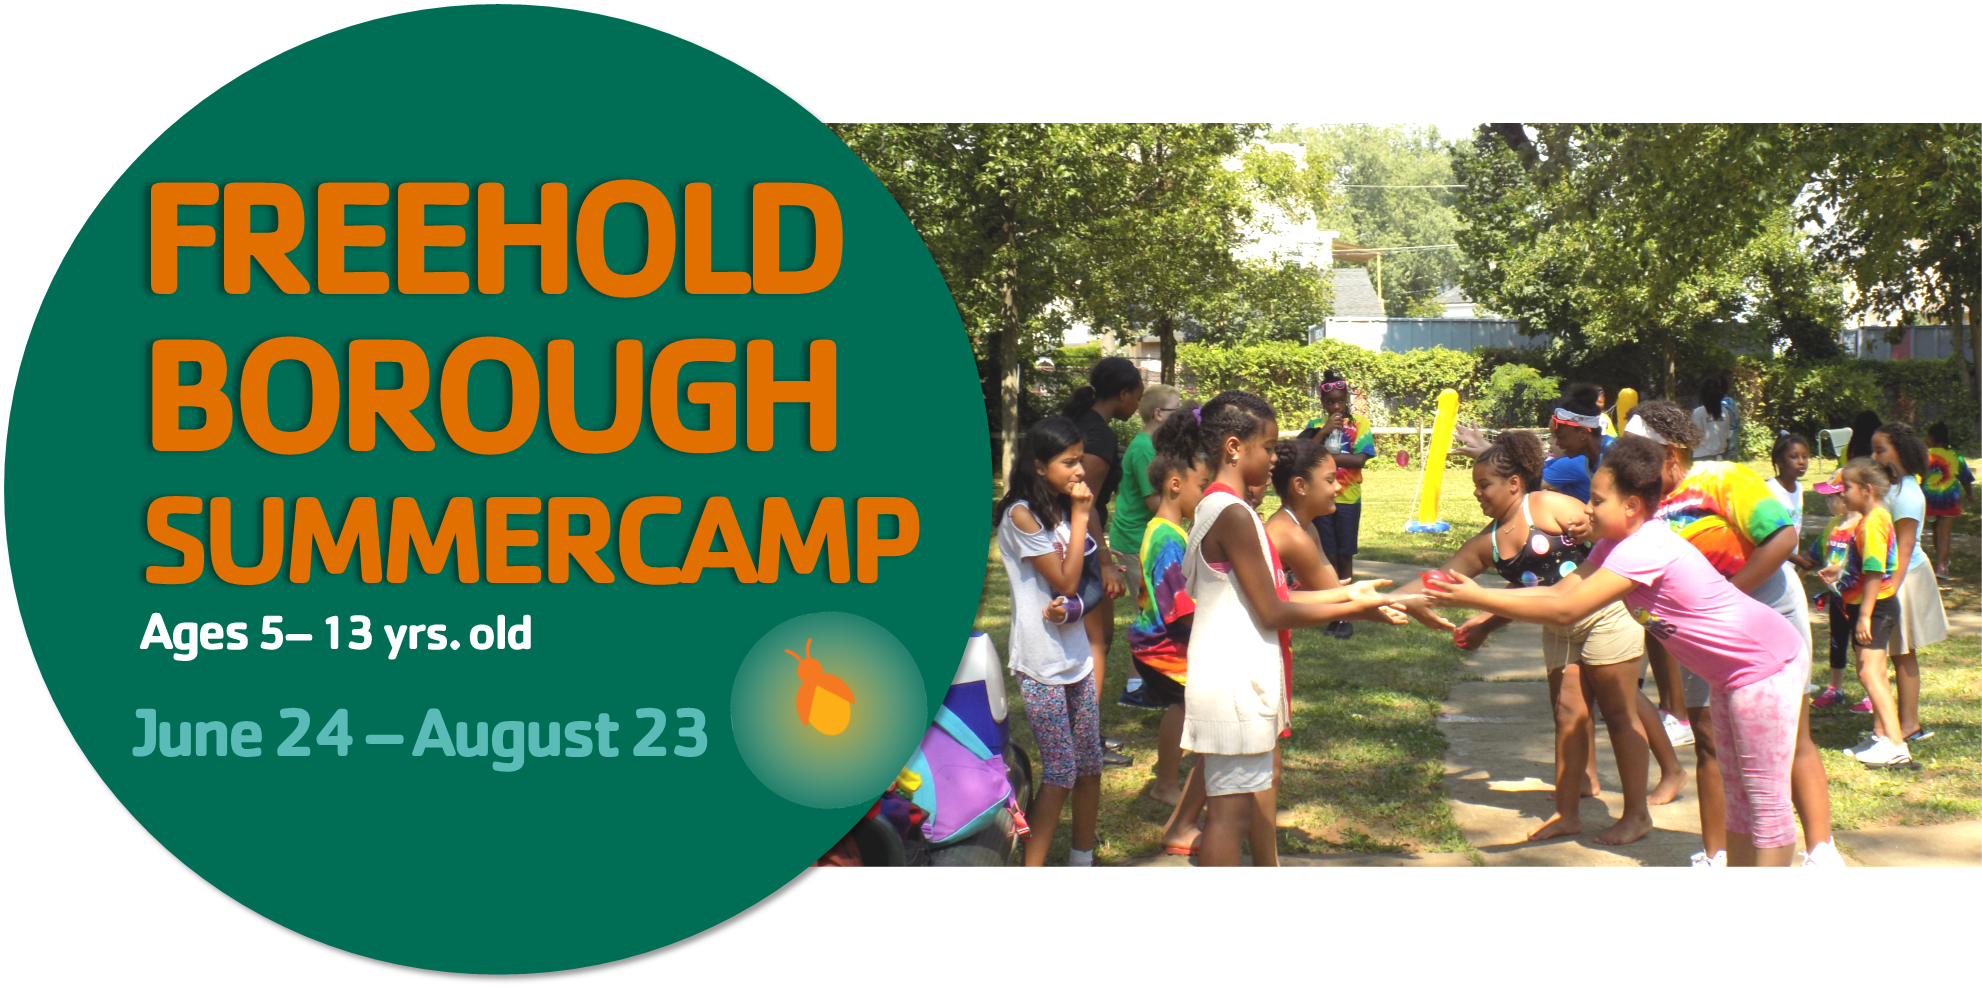 Freehold Borough Summer Camp - YMCA of Greater Monmouth County